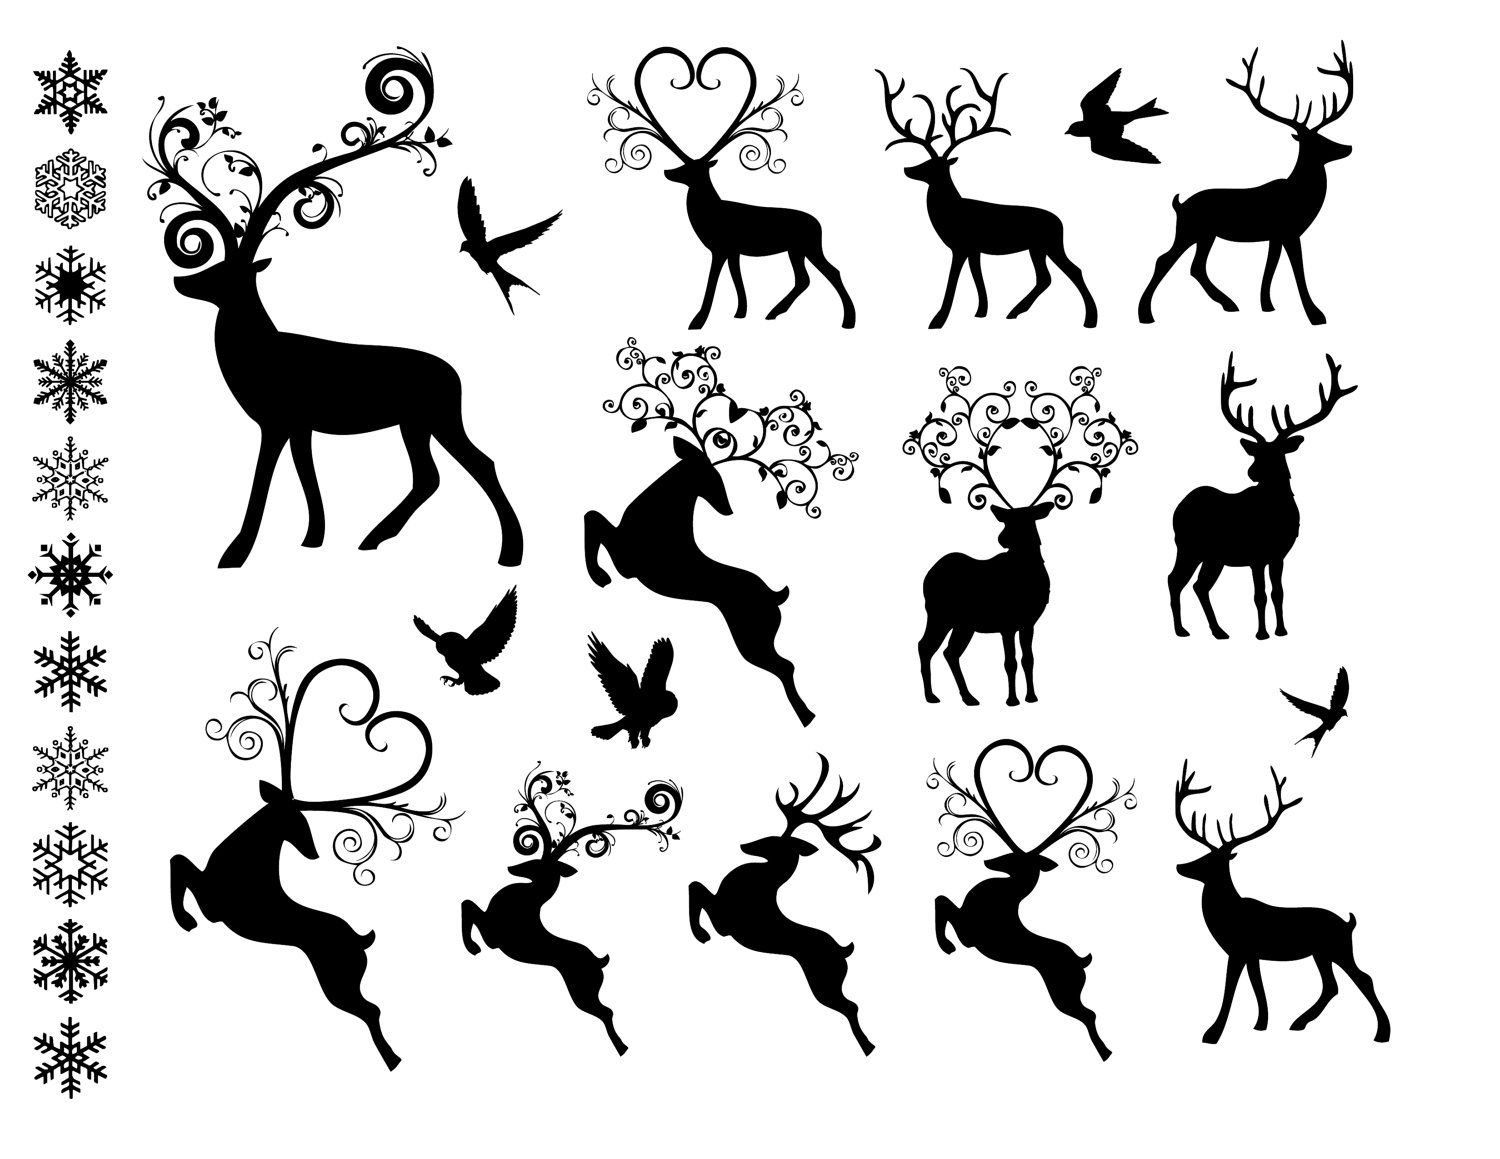 Merry Christmas Reindeer Clipart Black And White.